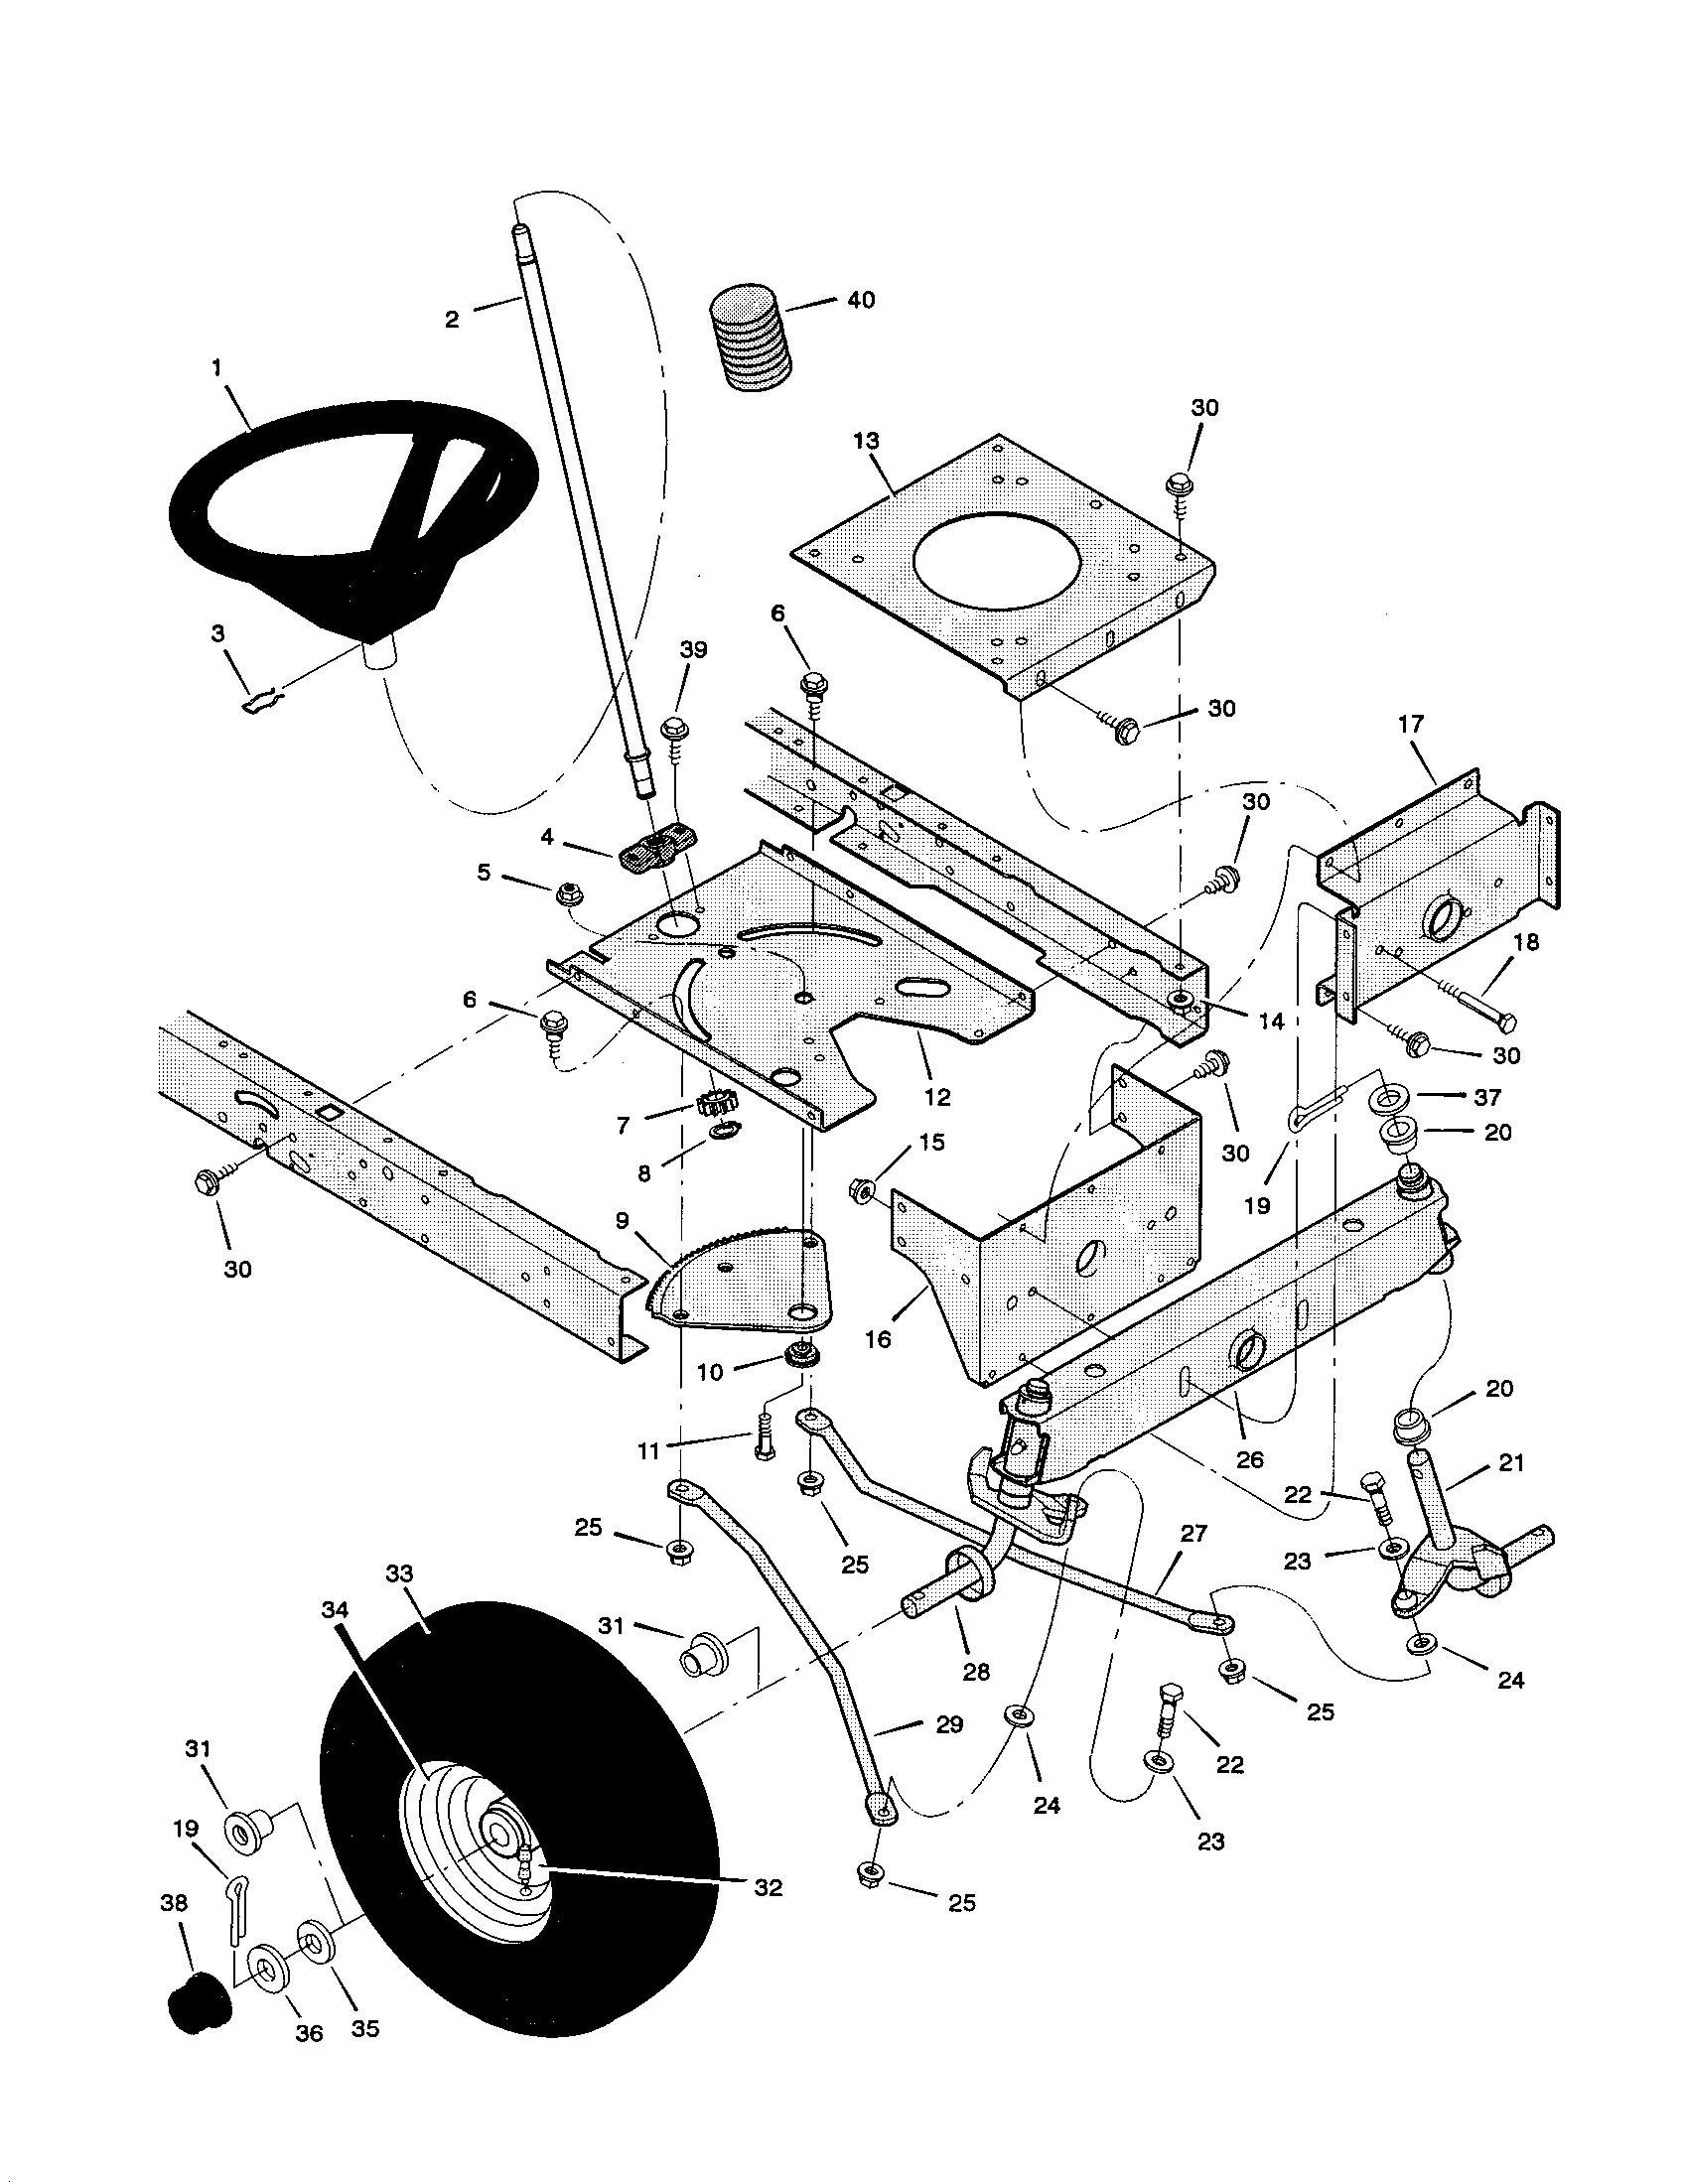 STEERING Diagram & Parts List for Model 42583x9a Murray